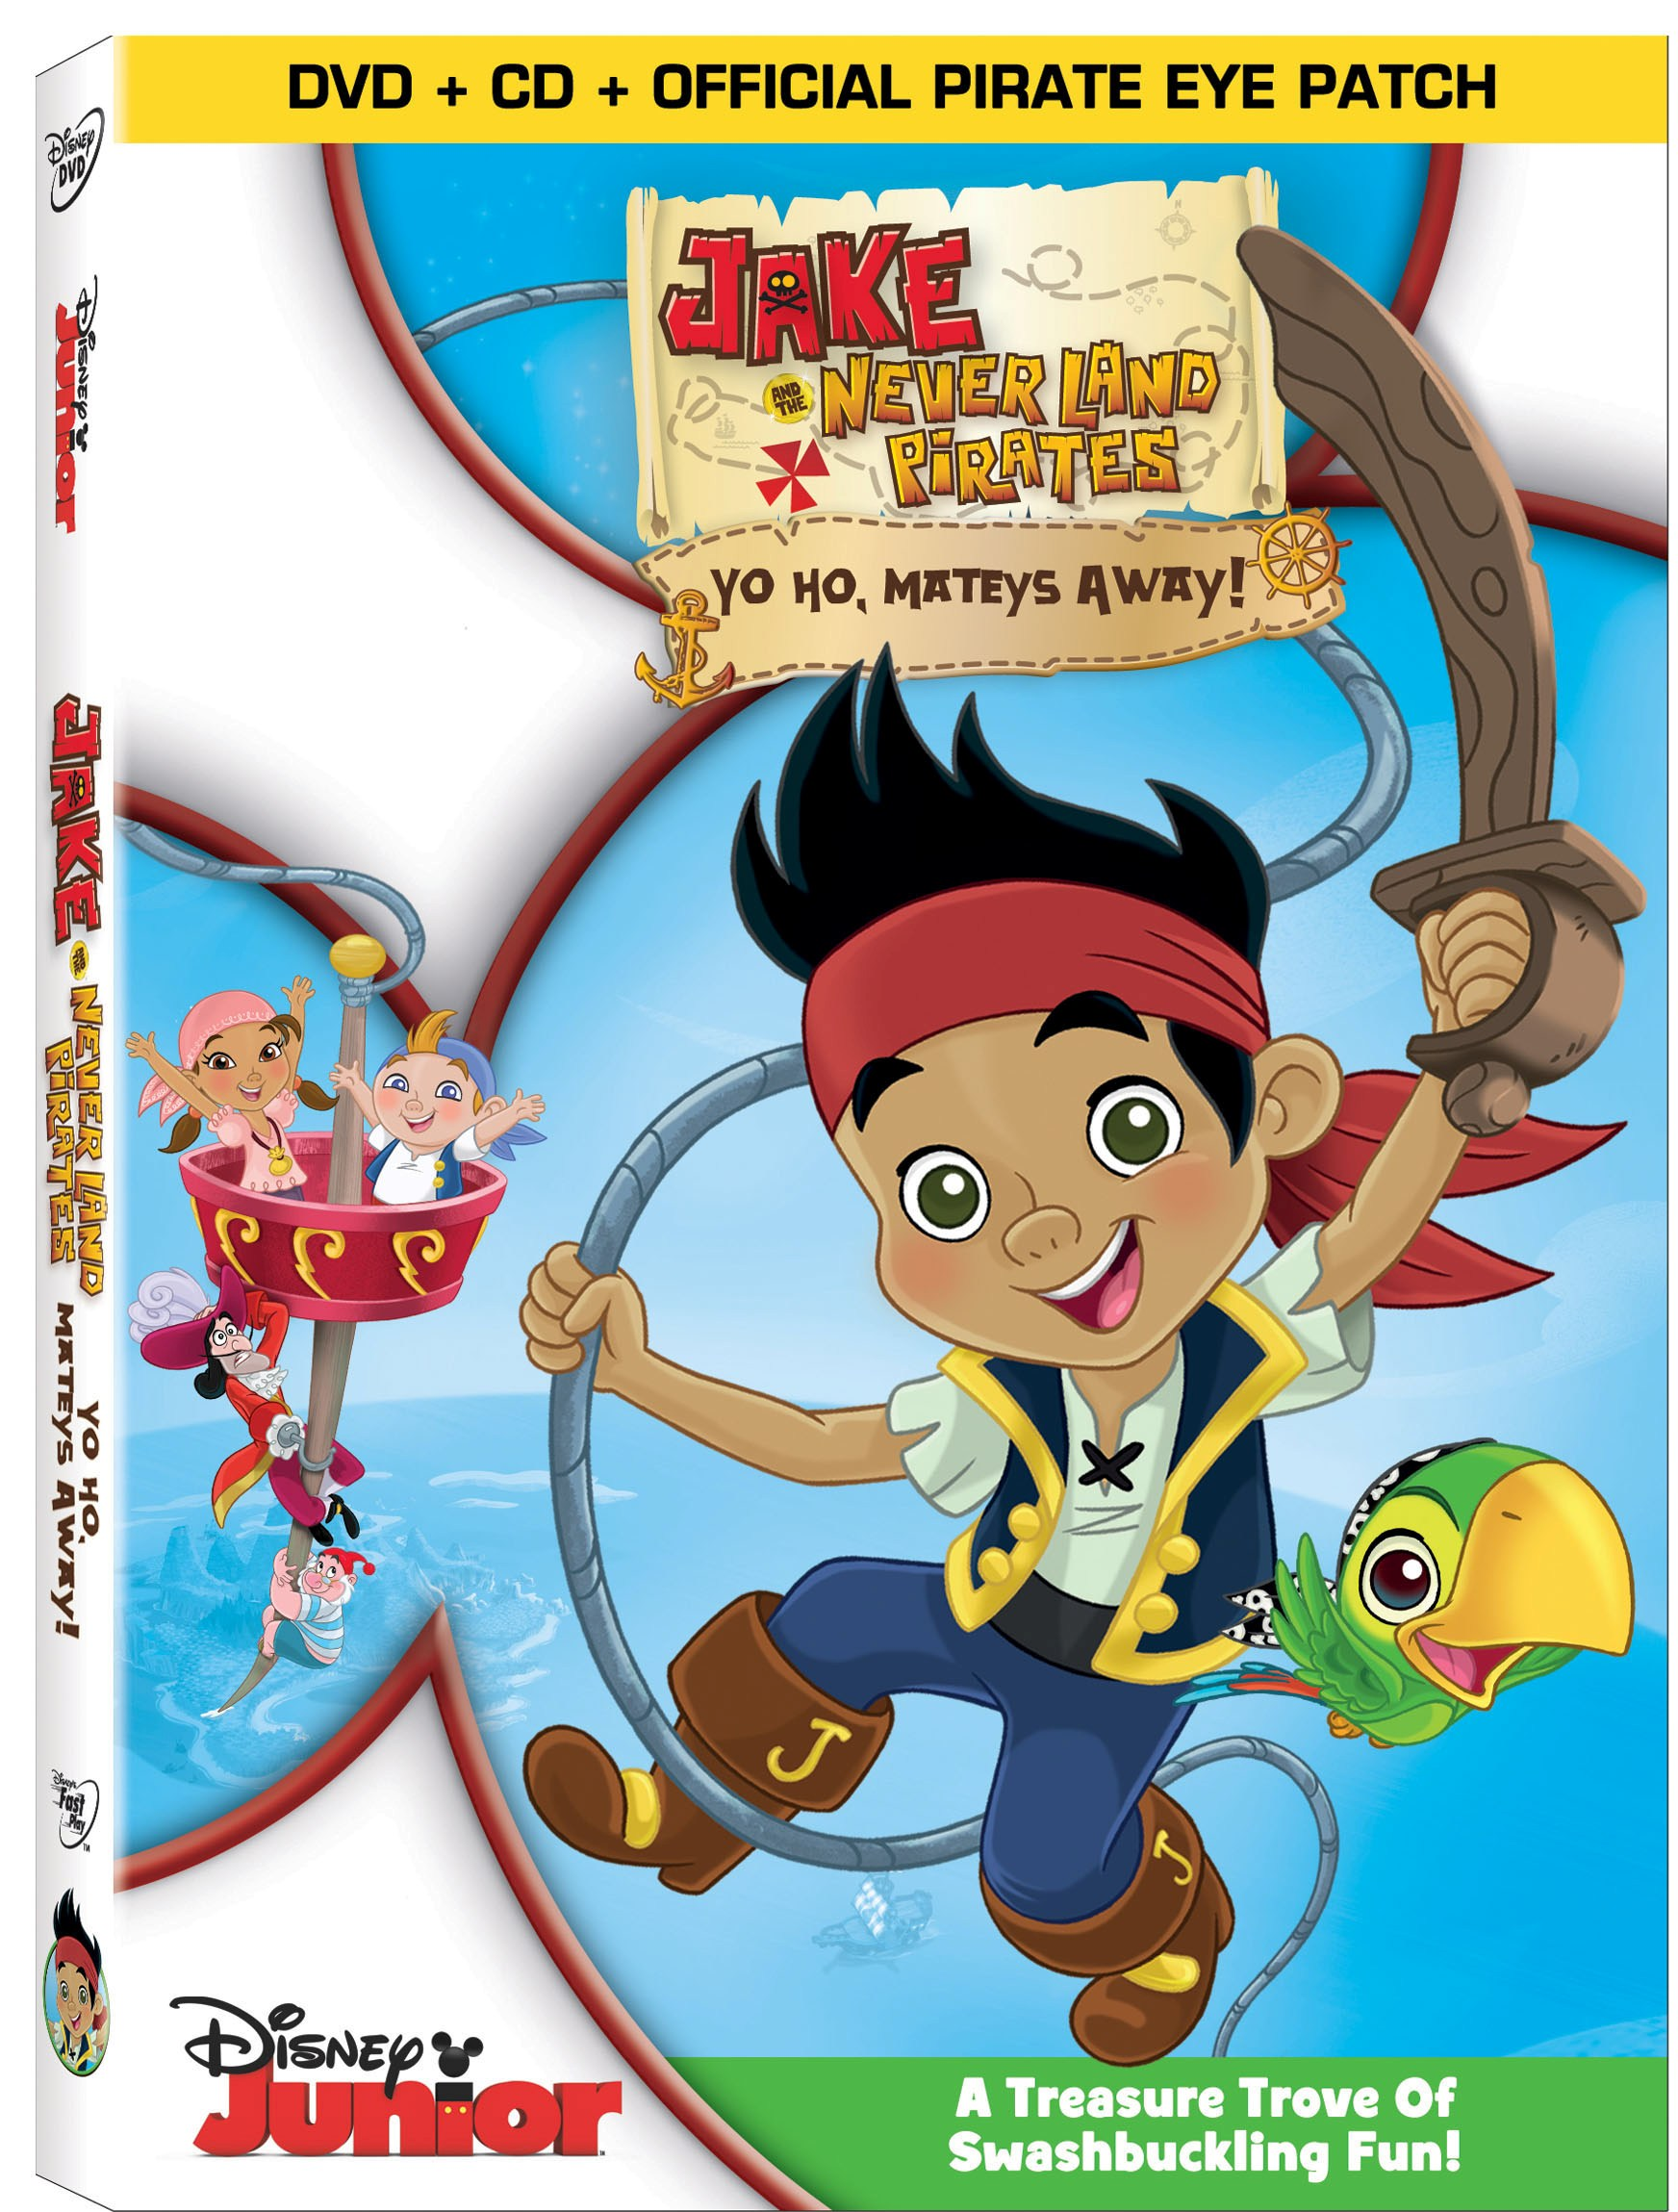 jack and the neverland pirates games